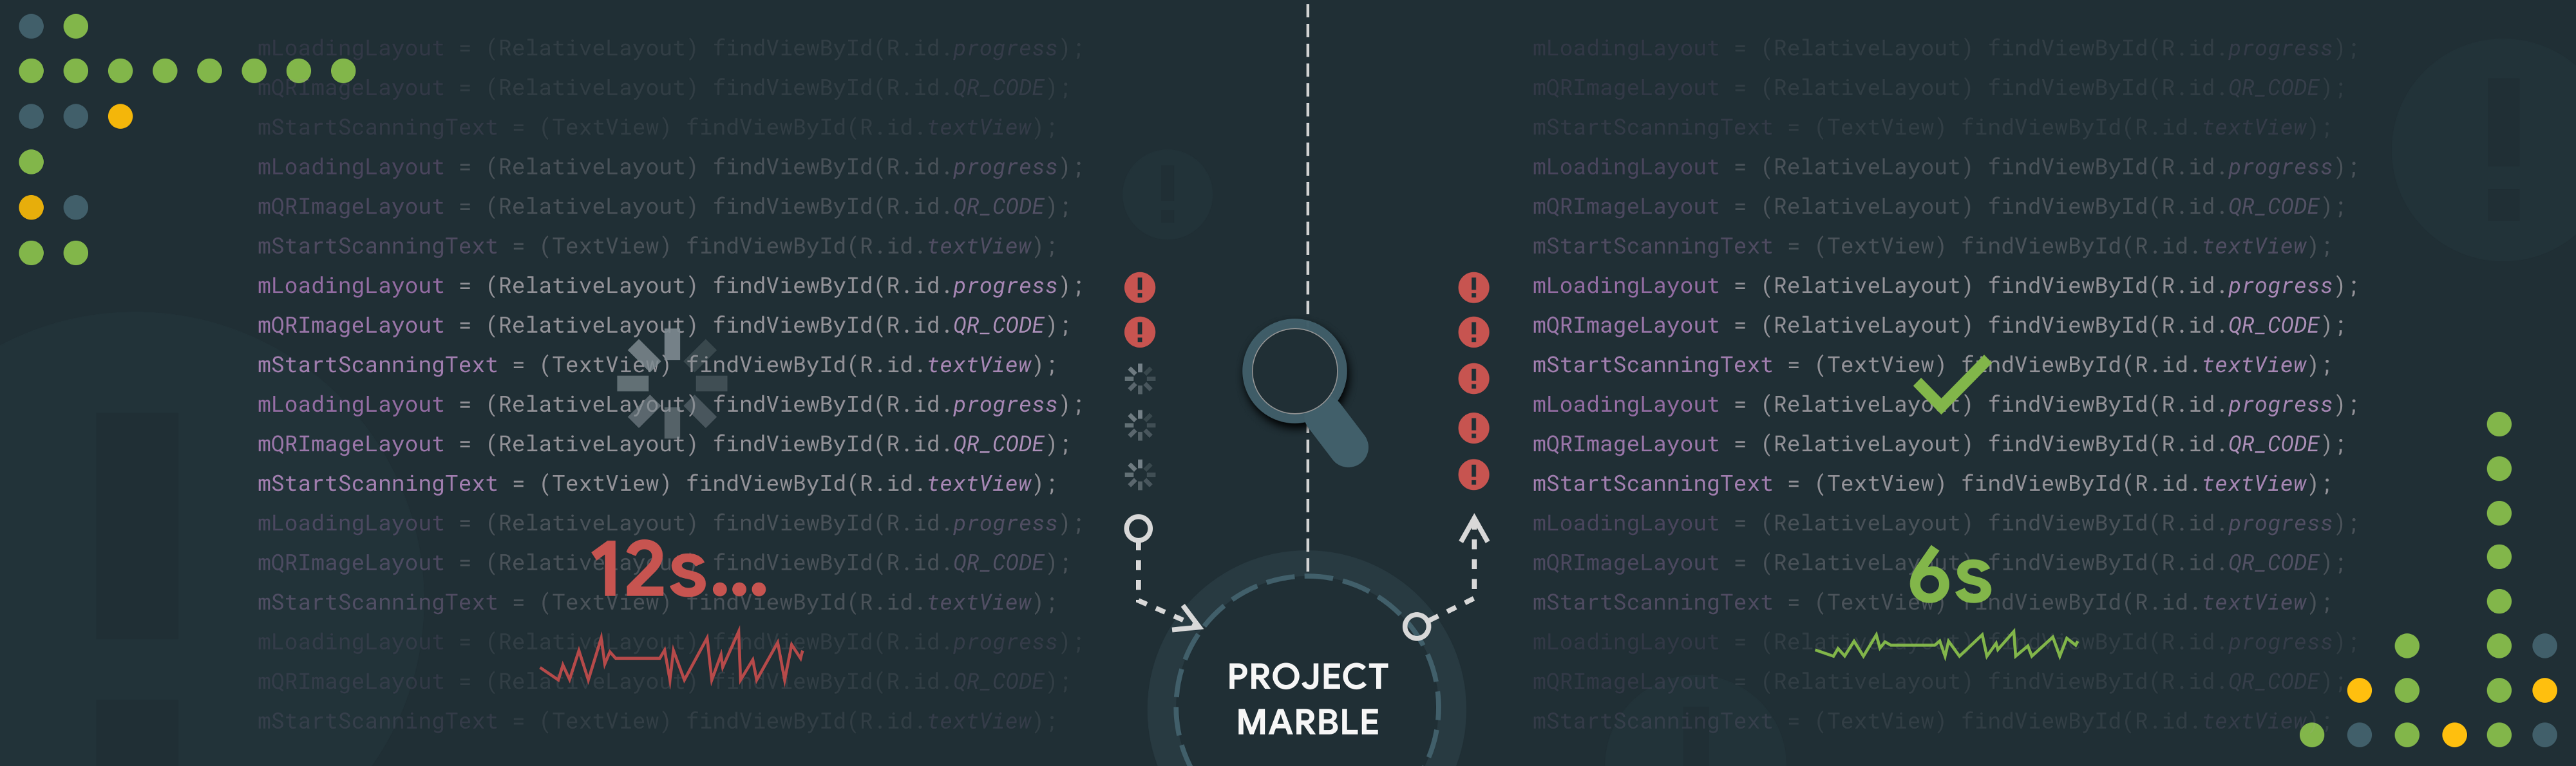 Android Studio Project Marble: Lint Performance - Android